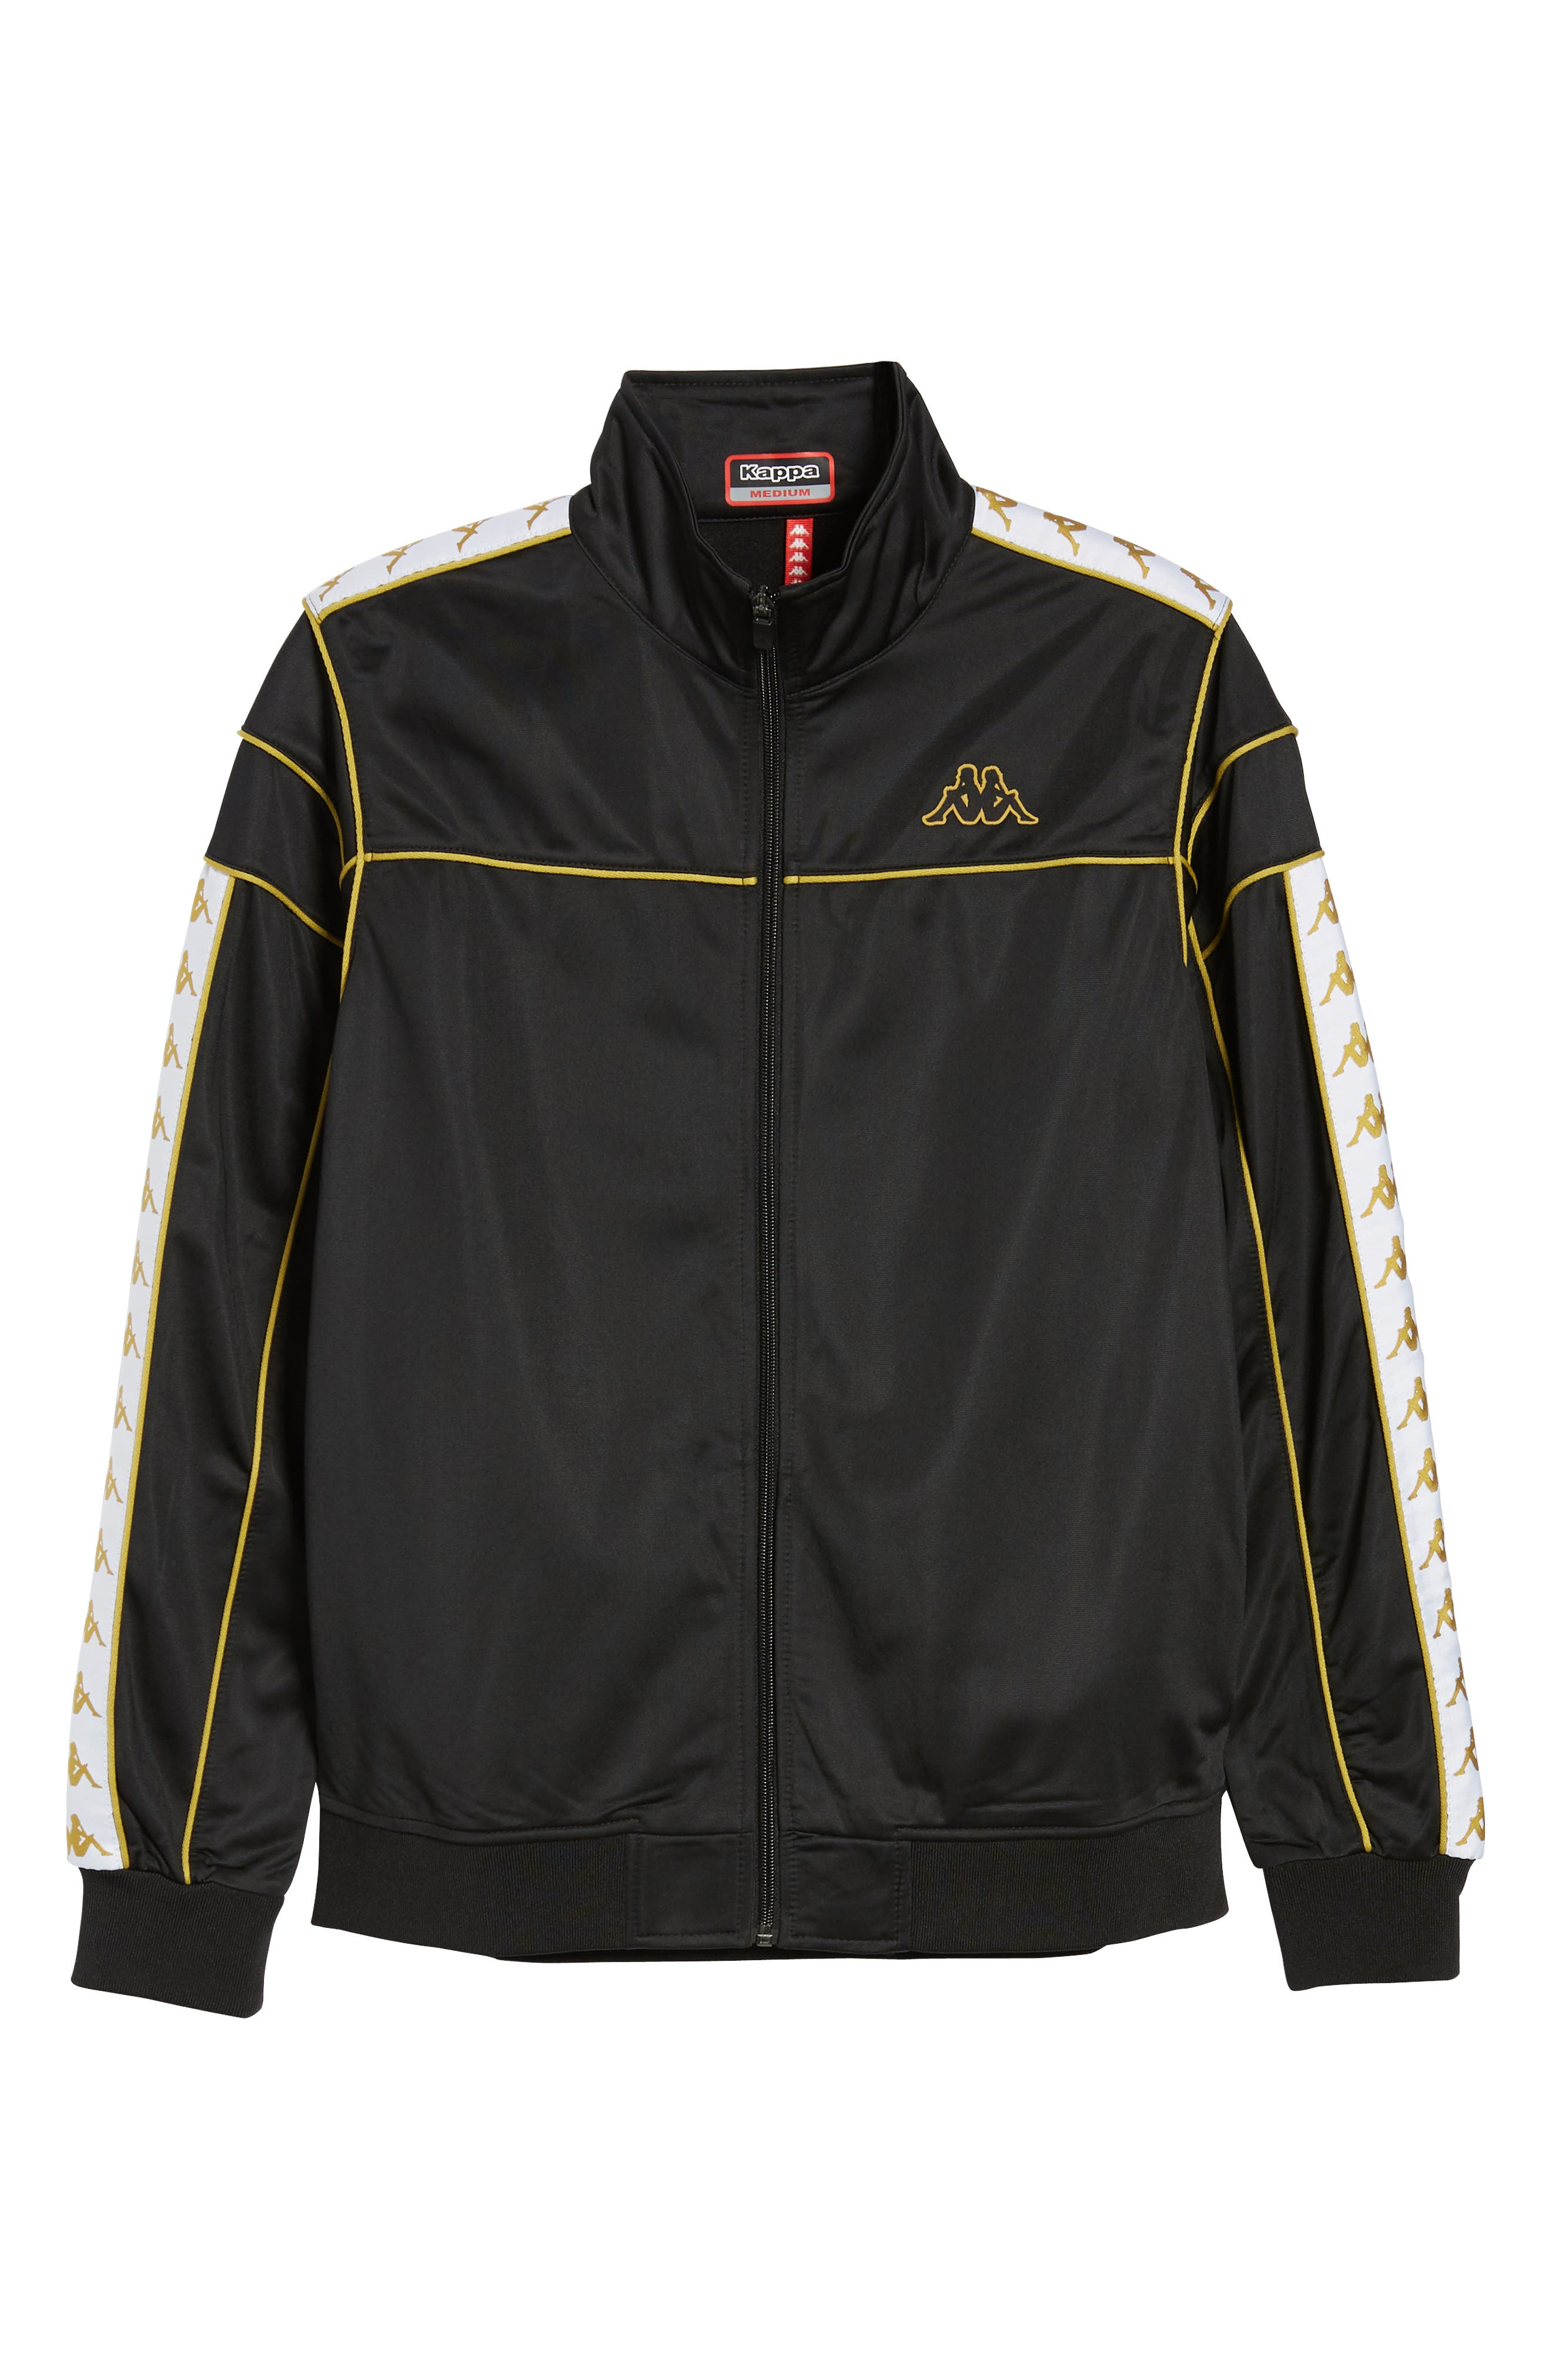 Racing Track Jacket,                             Alternate thumbnail 5, color,                             005